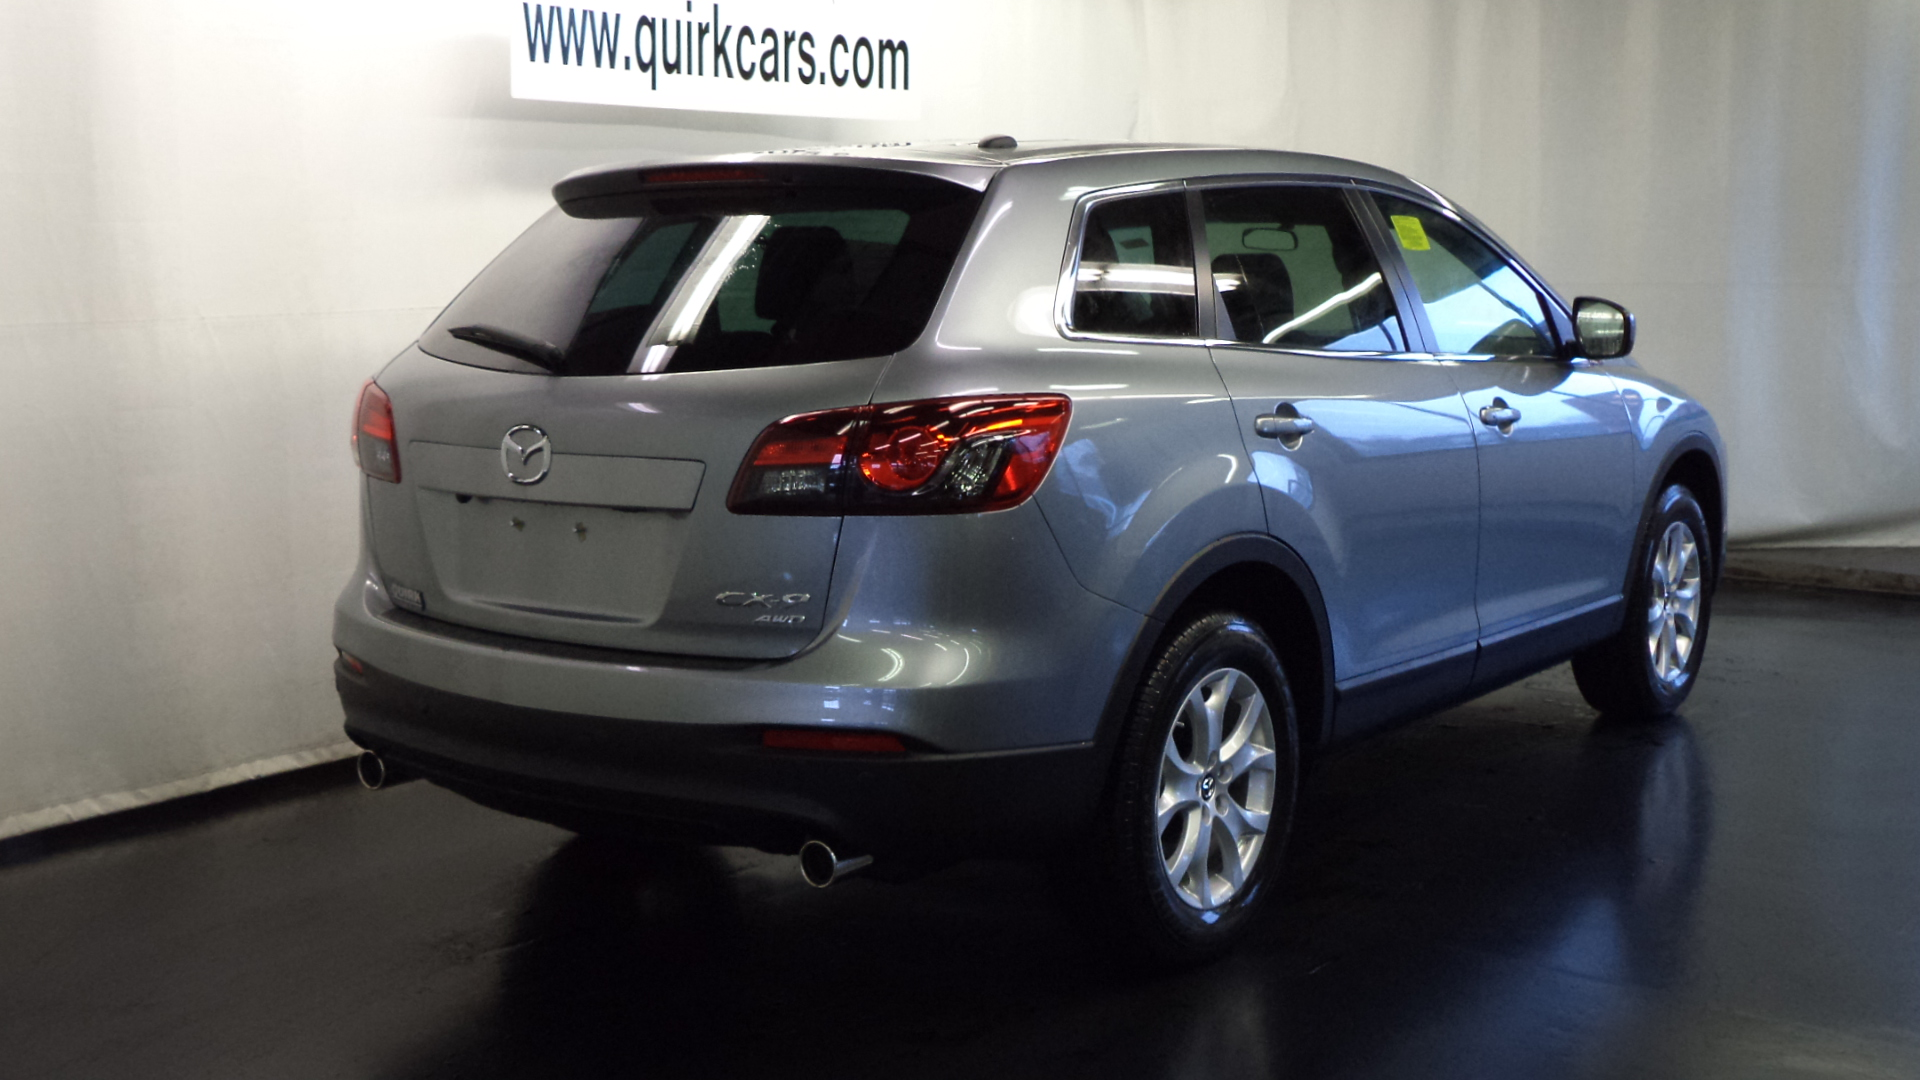 New 2013 Mazda CX 9 Z20660   NH  Massachusetts New Mazda Dealer HD Wallpaper